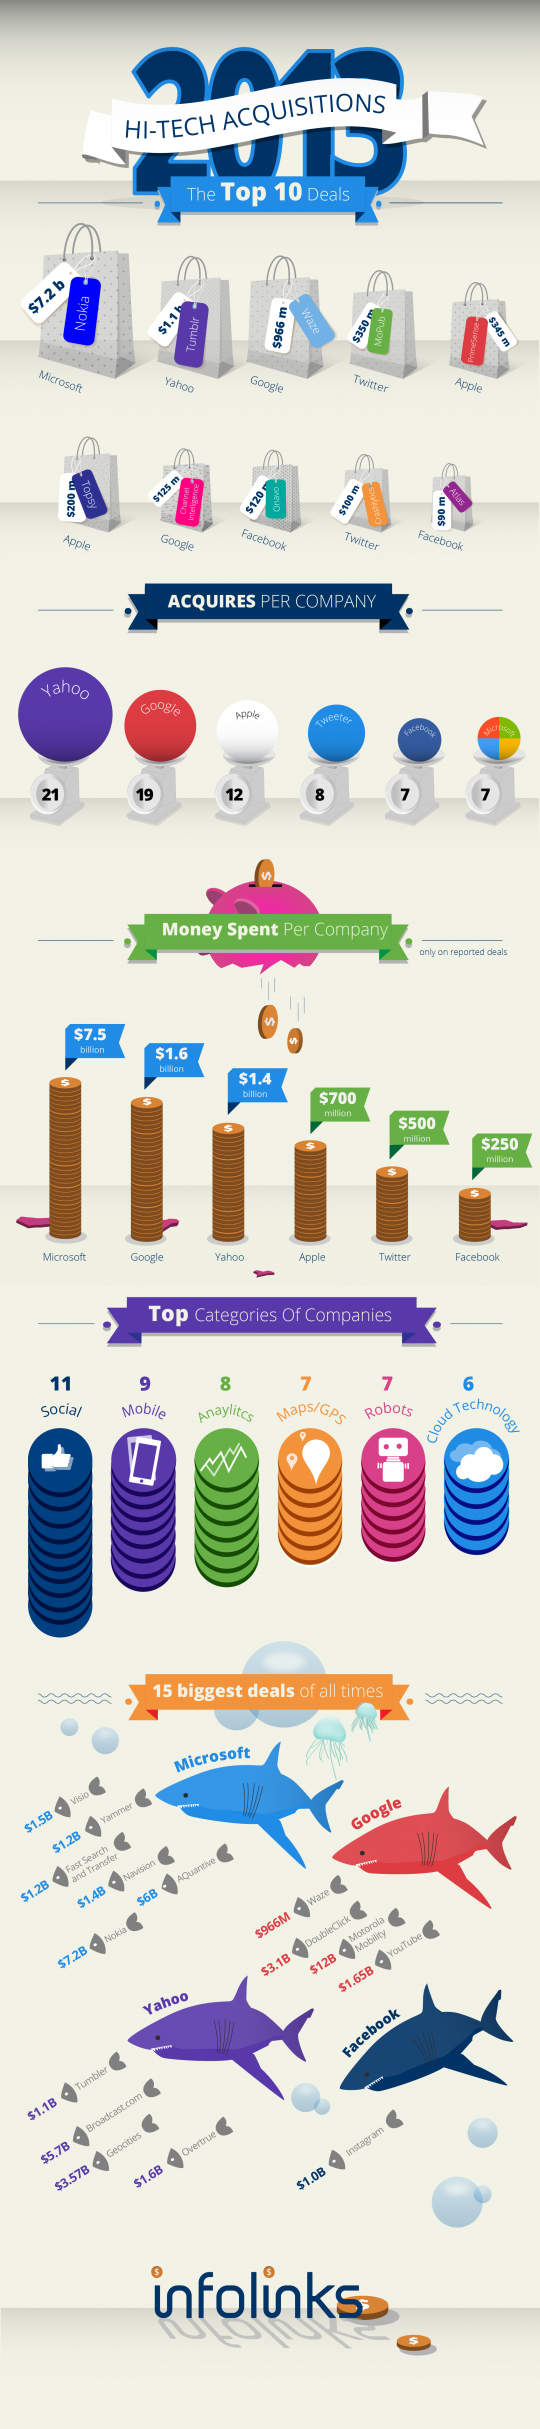 2013 Hi-Tech Acquisitions The Top 10 Deals